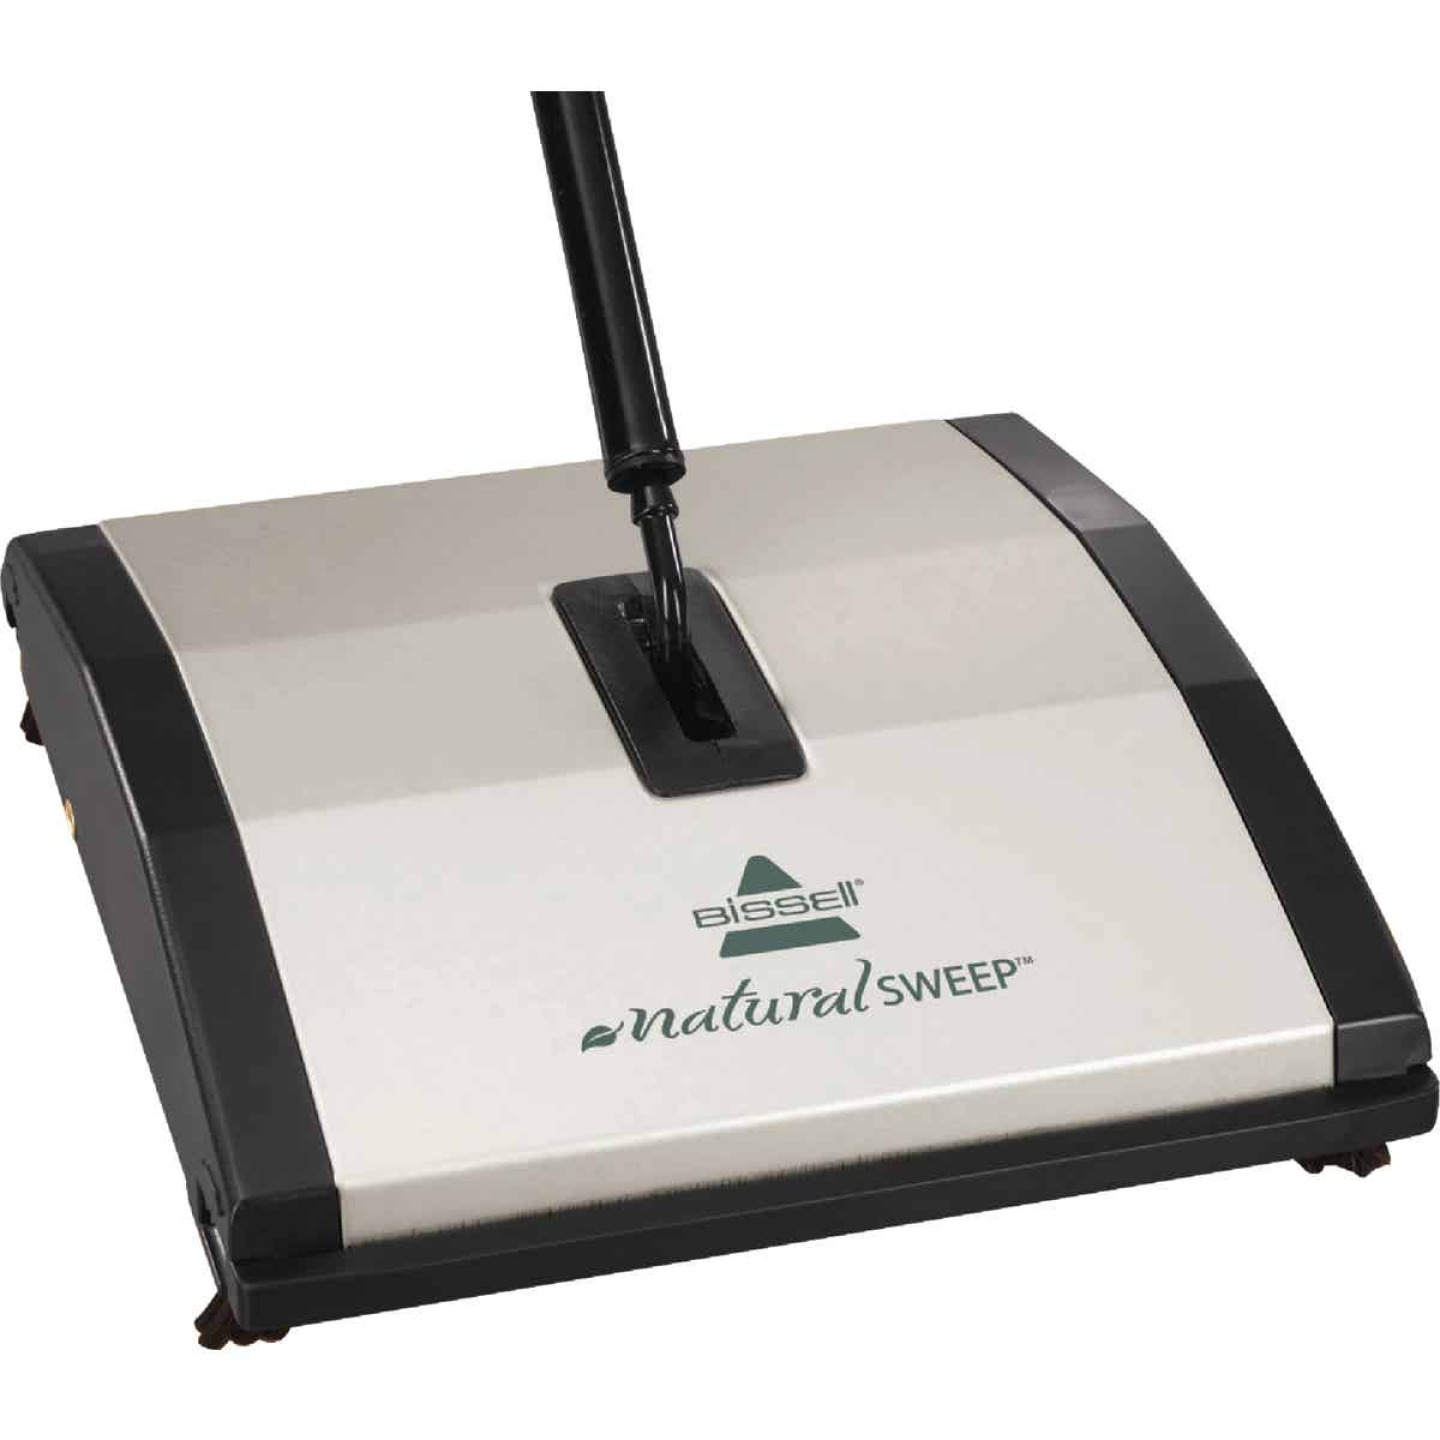 Bissell Natural Sweep Carpet & Floor Sweeper Image 1